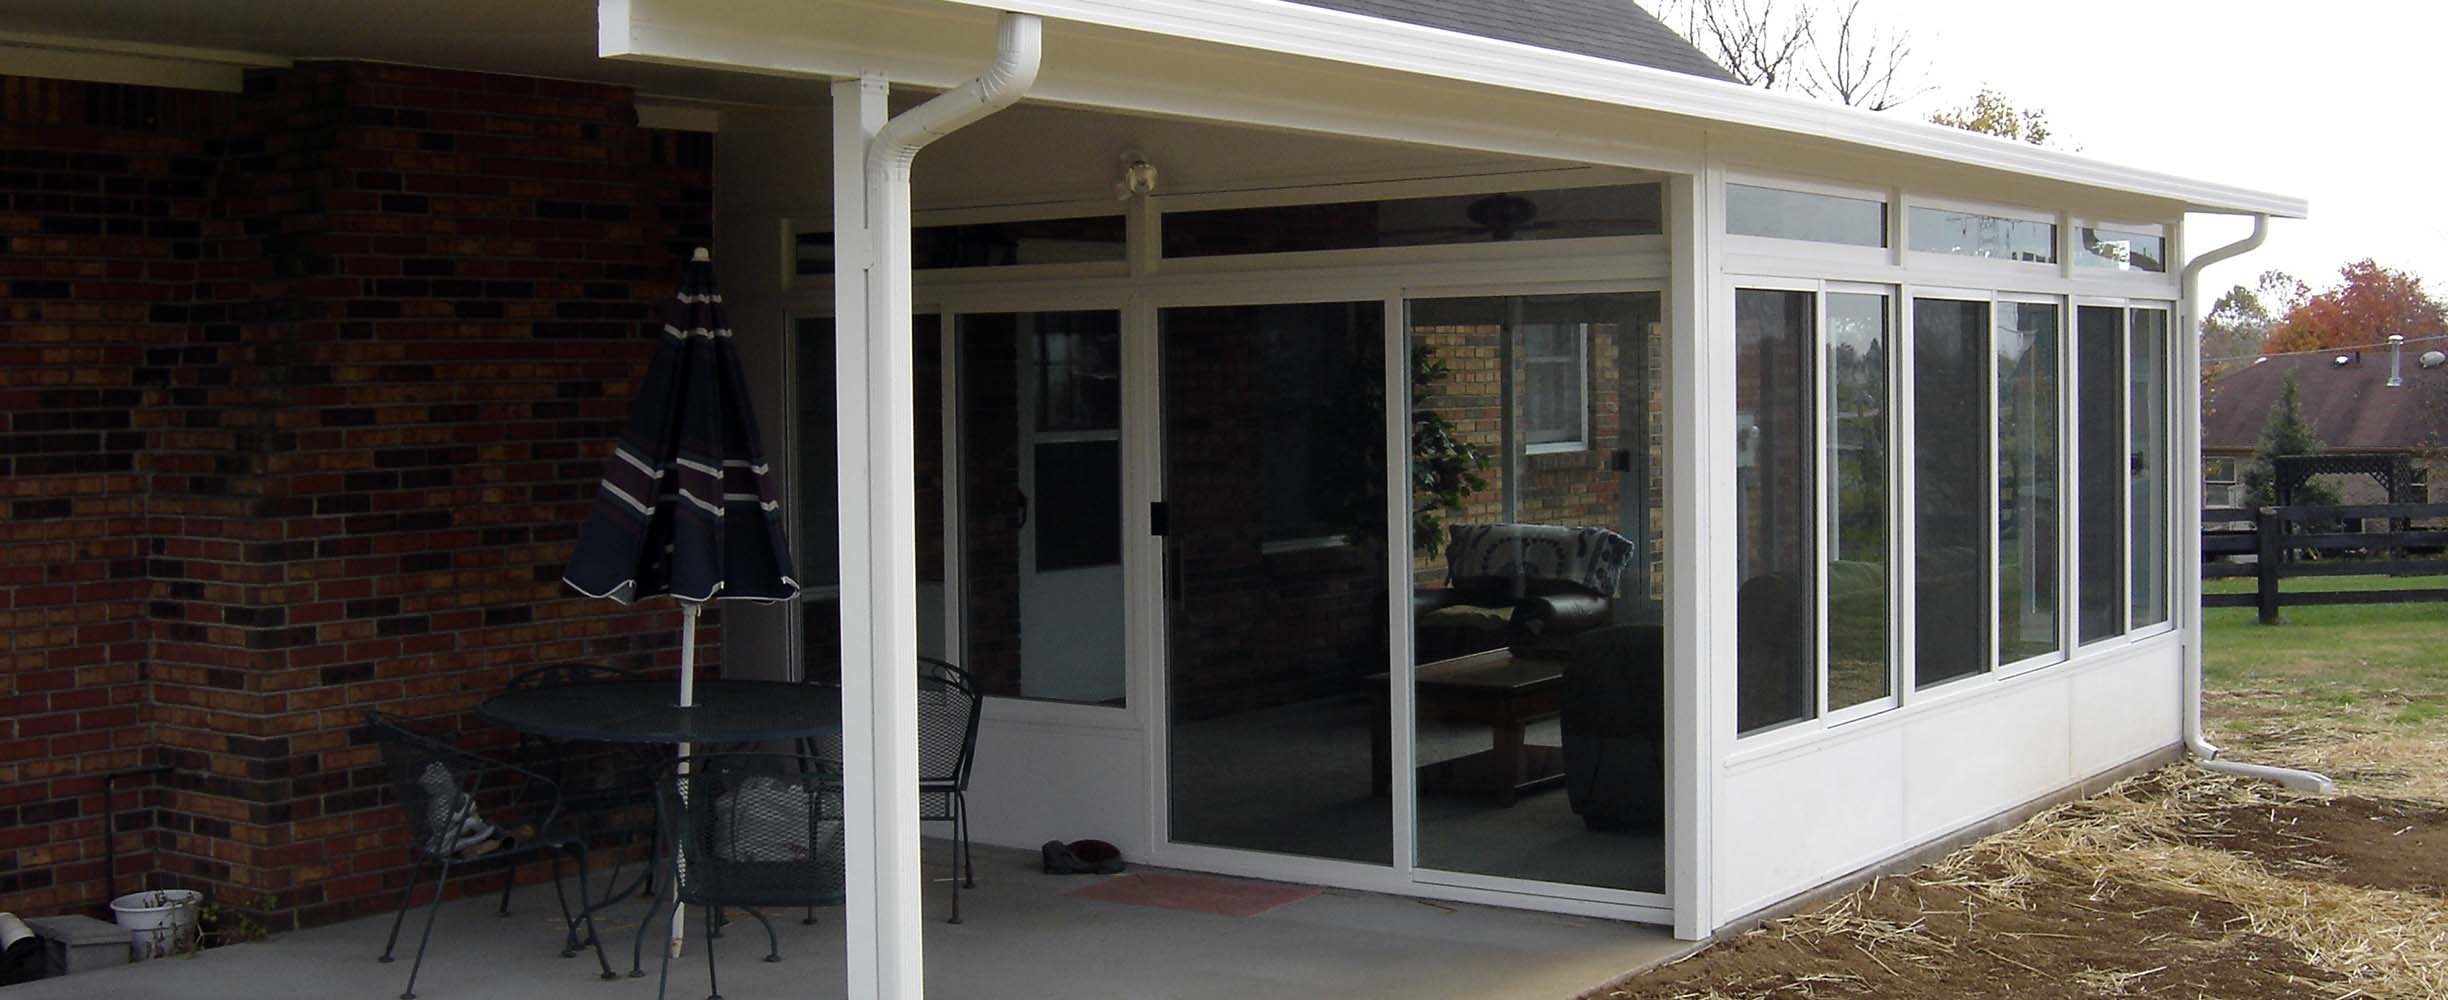 Patio covers can be mixed with patio sunrooms to make really practical house extensions within a reasonably low budget